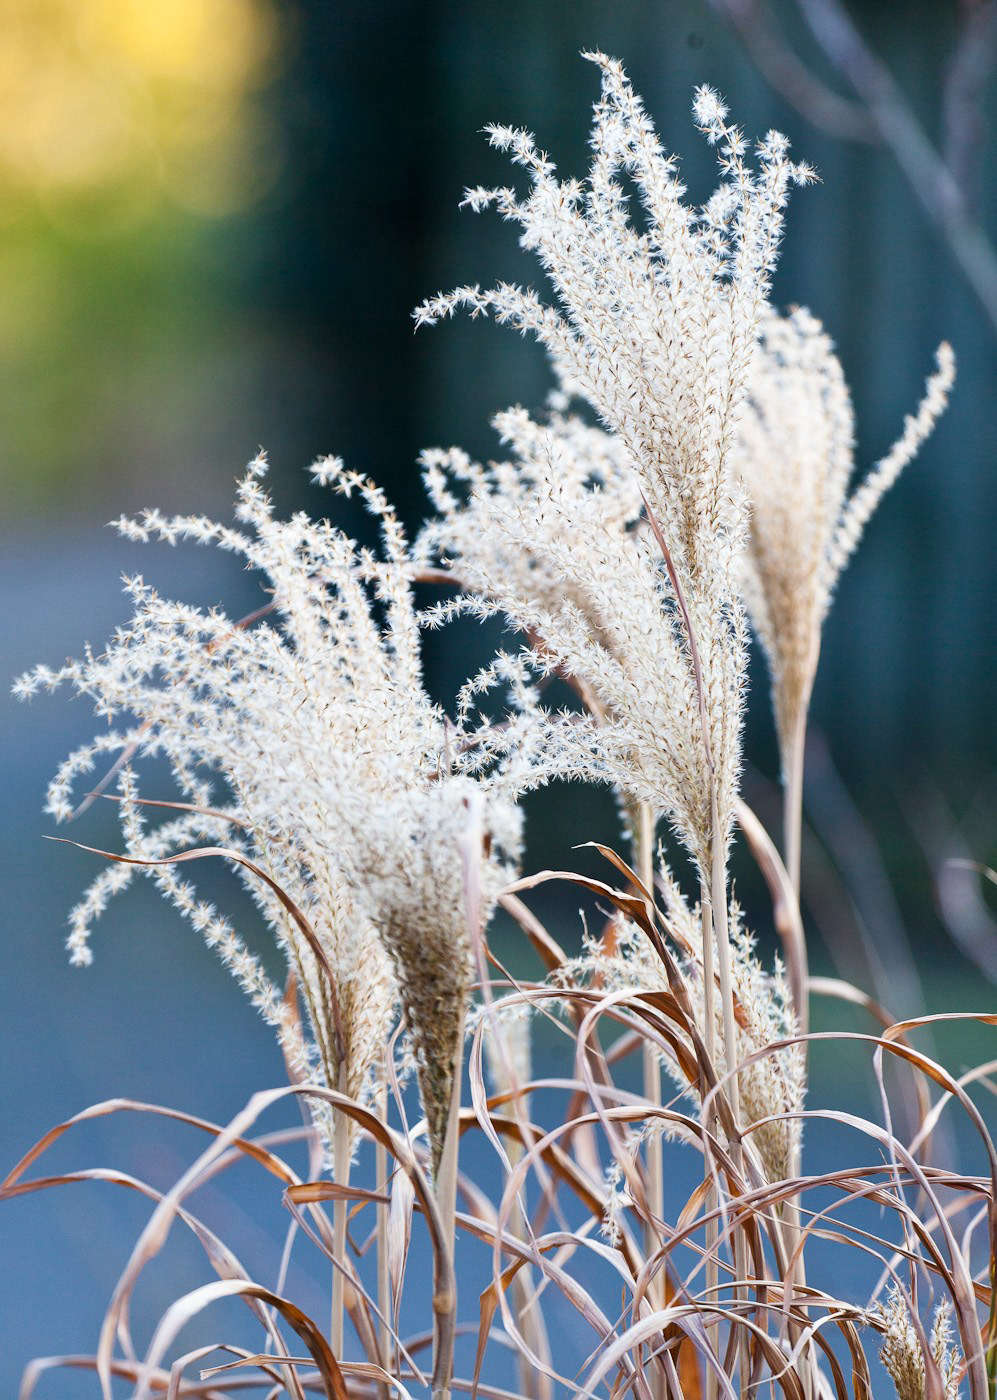 Miscanthus in February. Photograph by alhsrc=